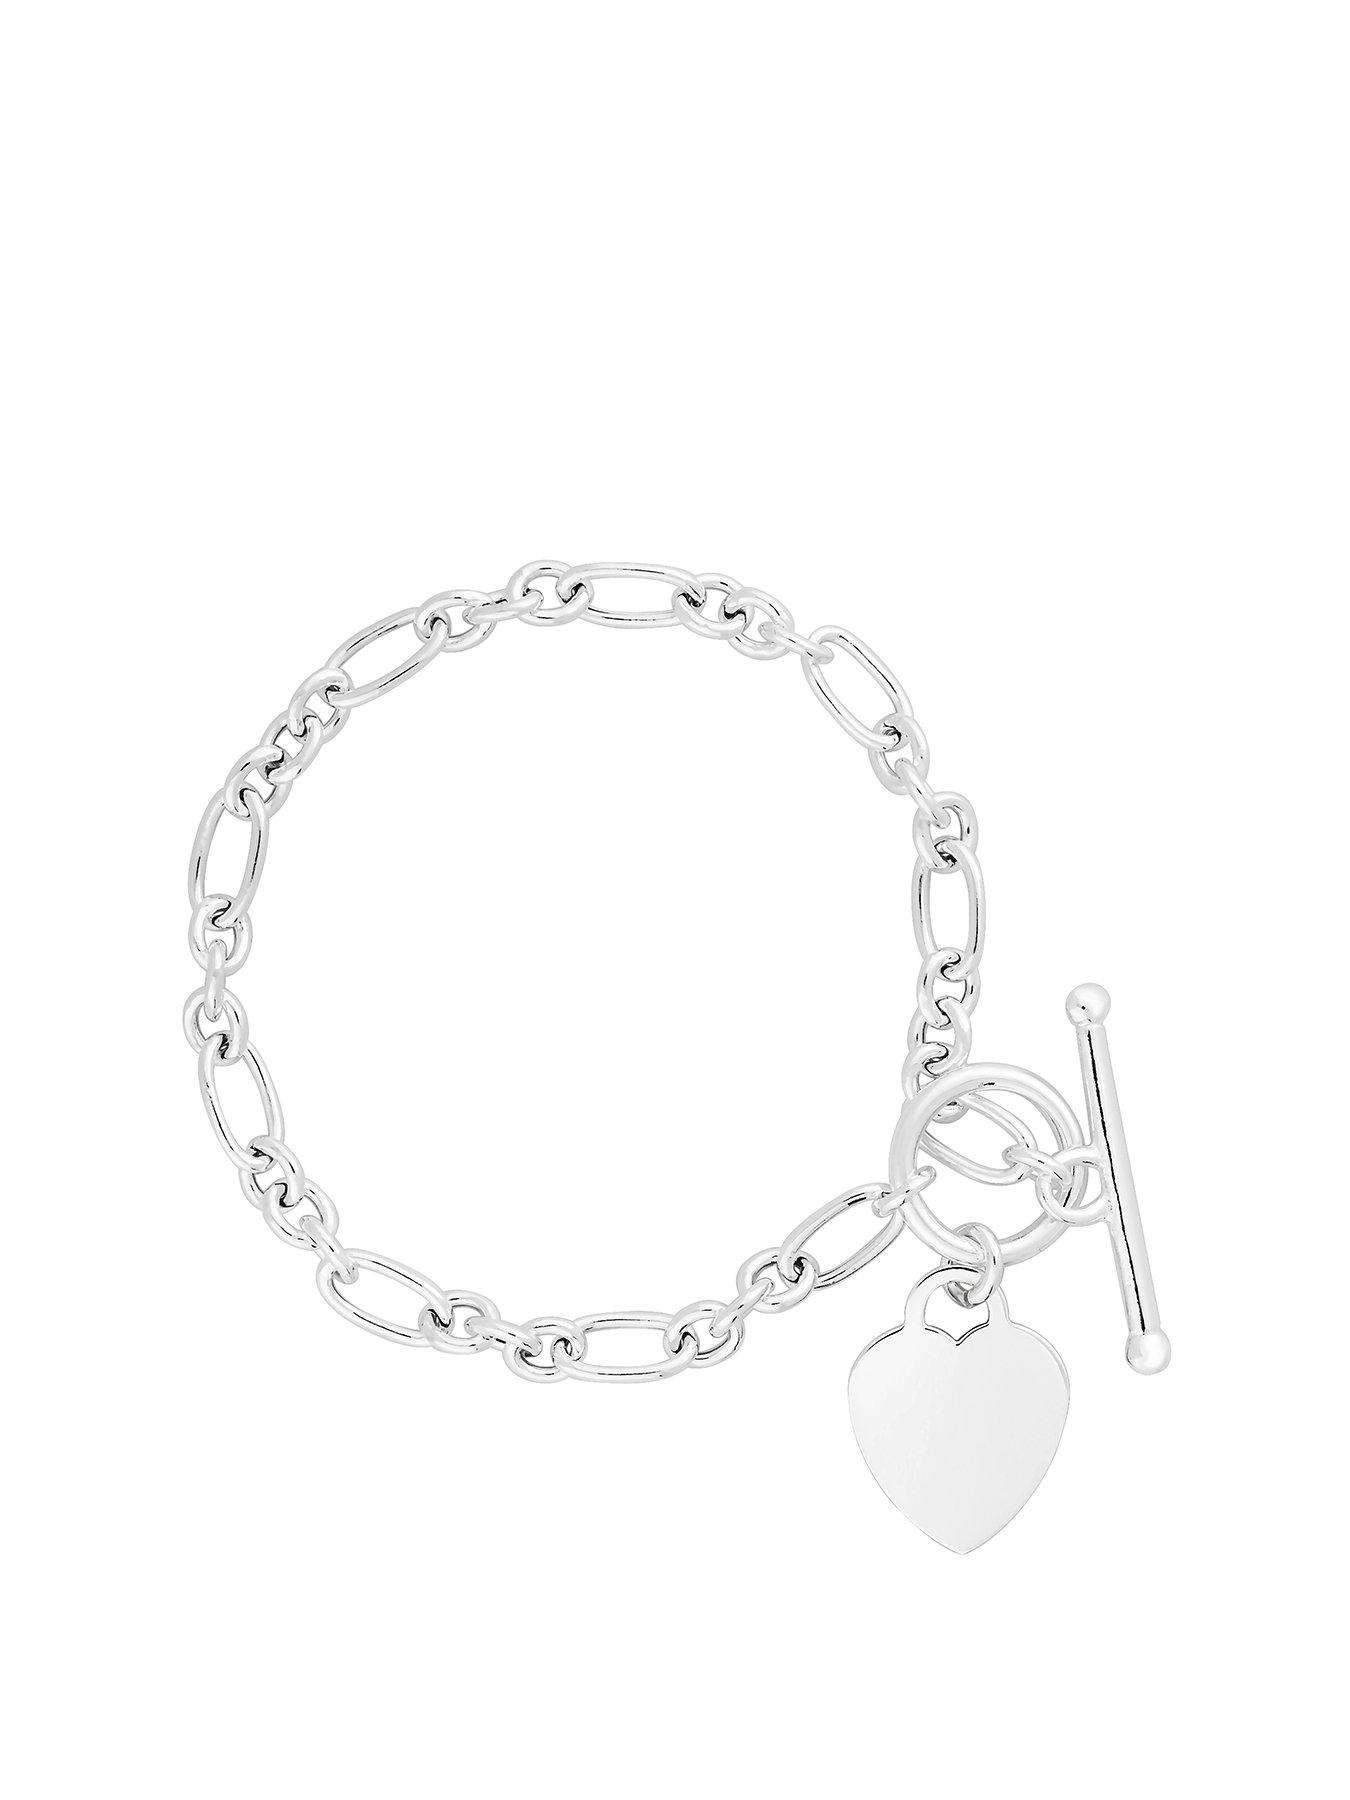 Silver Toned Baby or Child Engraved Pearl Inspired Bracelet